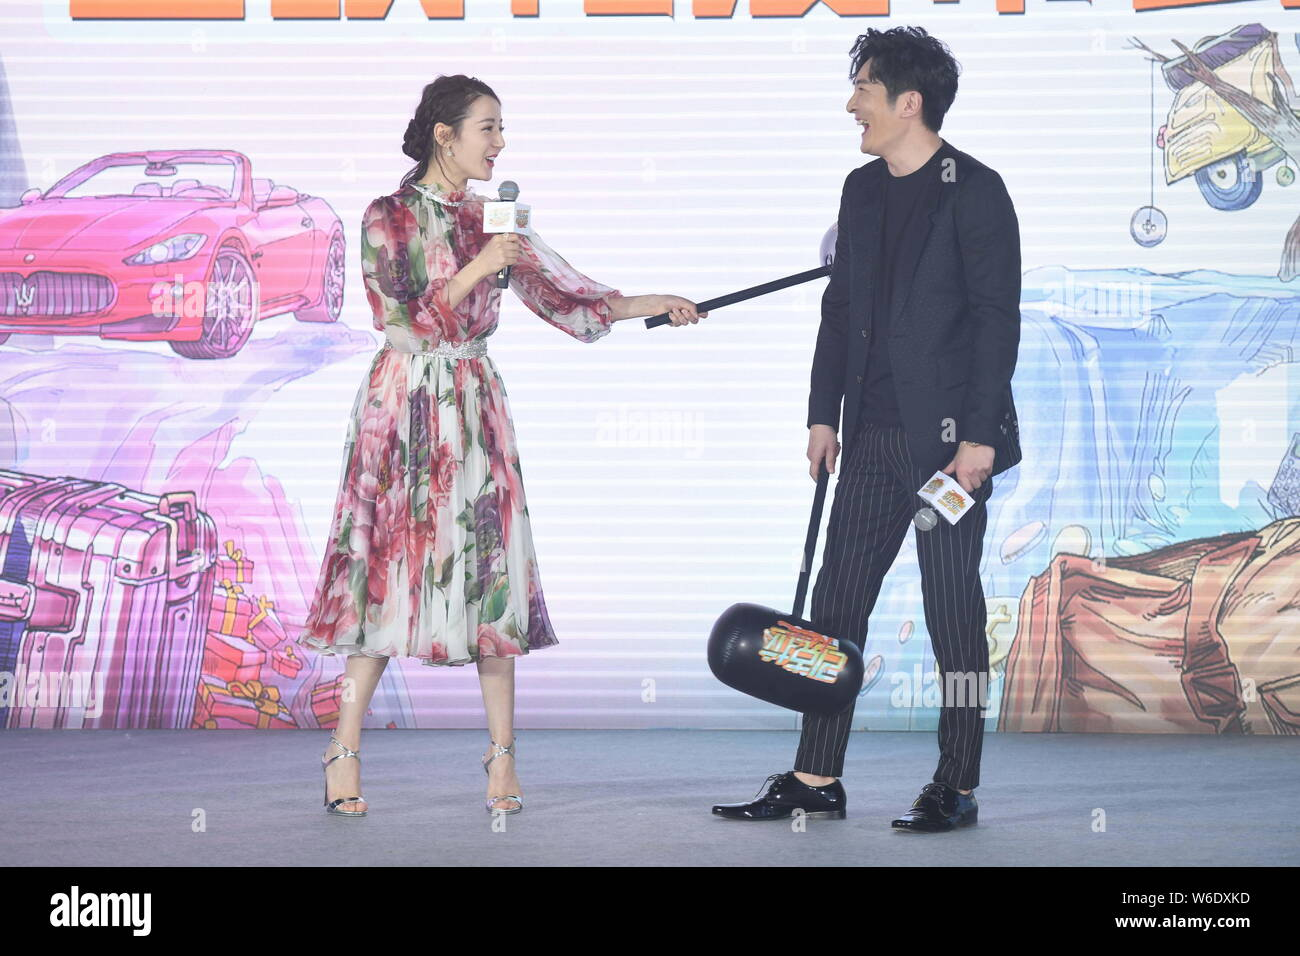 "Chinese Uigur actress Dilraba Dilmurat and Chinese actor Guo Jingfei attend the premiere event for the movie ""21 Karat"" in Beijing, China, 16 April 20 Stock Photo"